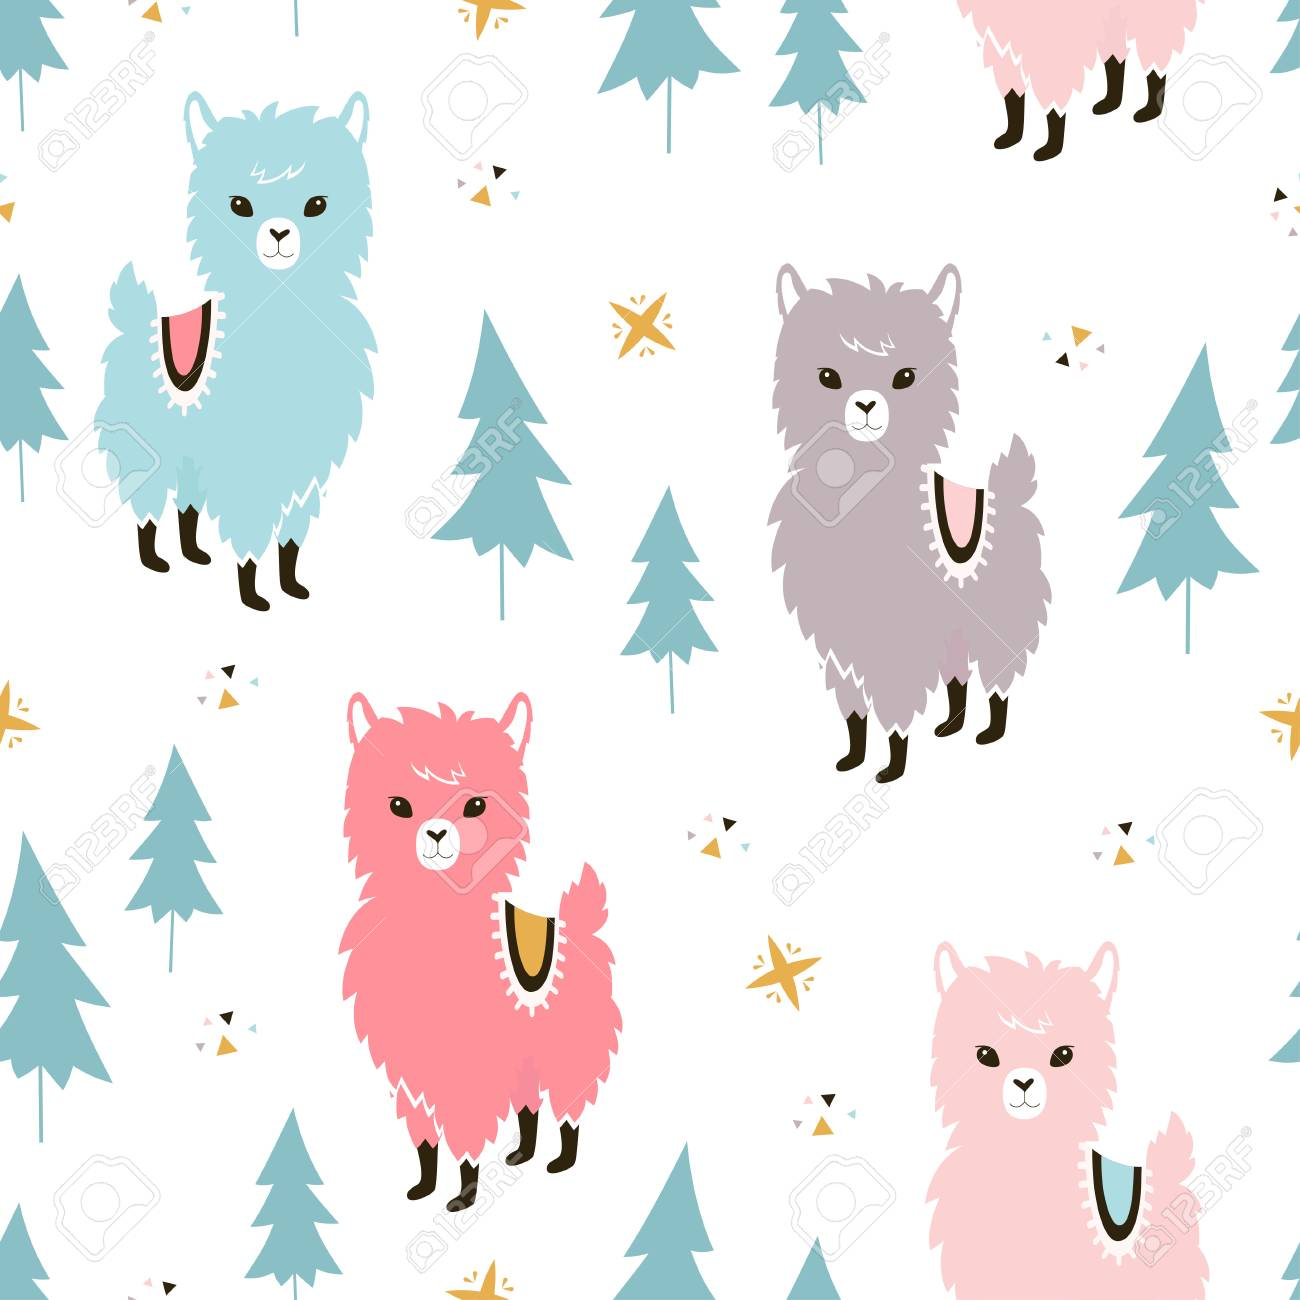 127633019 christmas llamas seamless pattern winter holidays greeting card background with cute cartoon animal